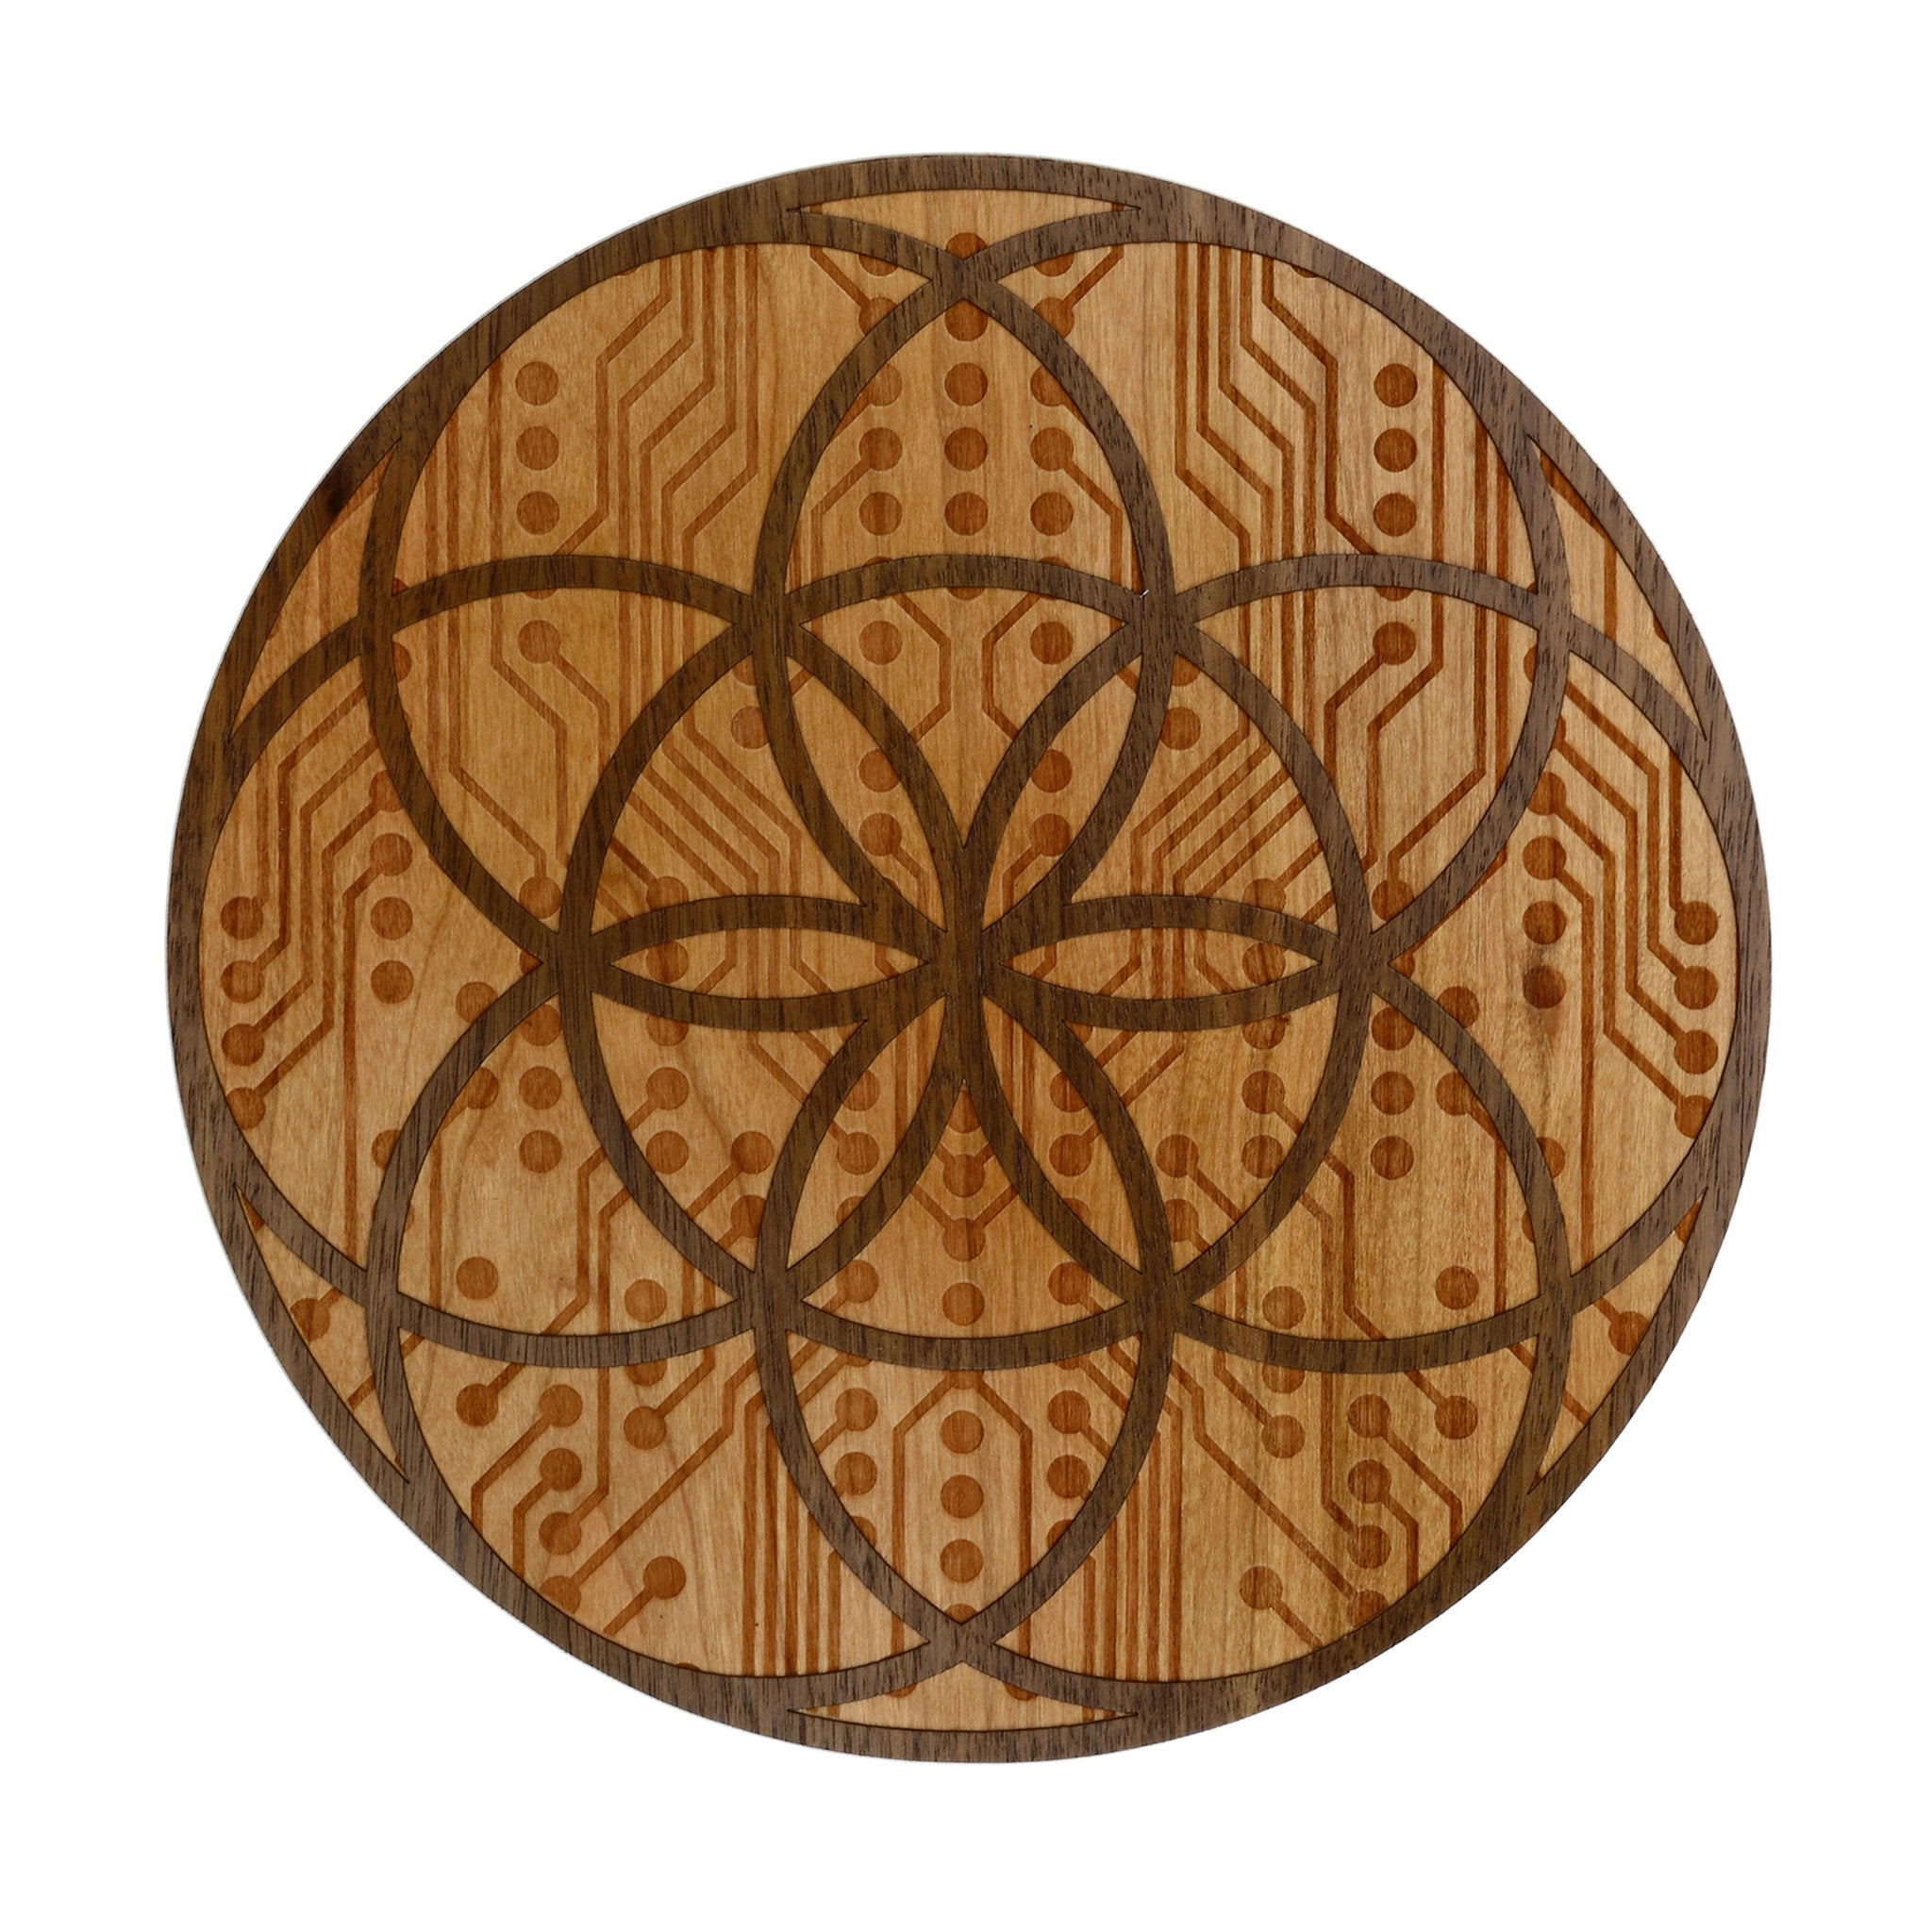 Seed of Life Wood Sticker